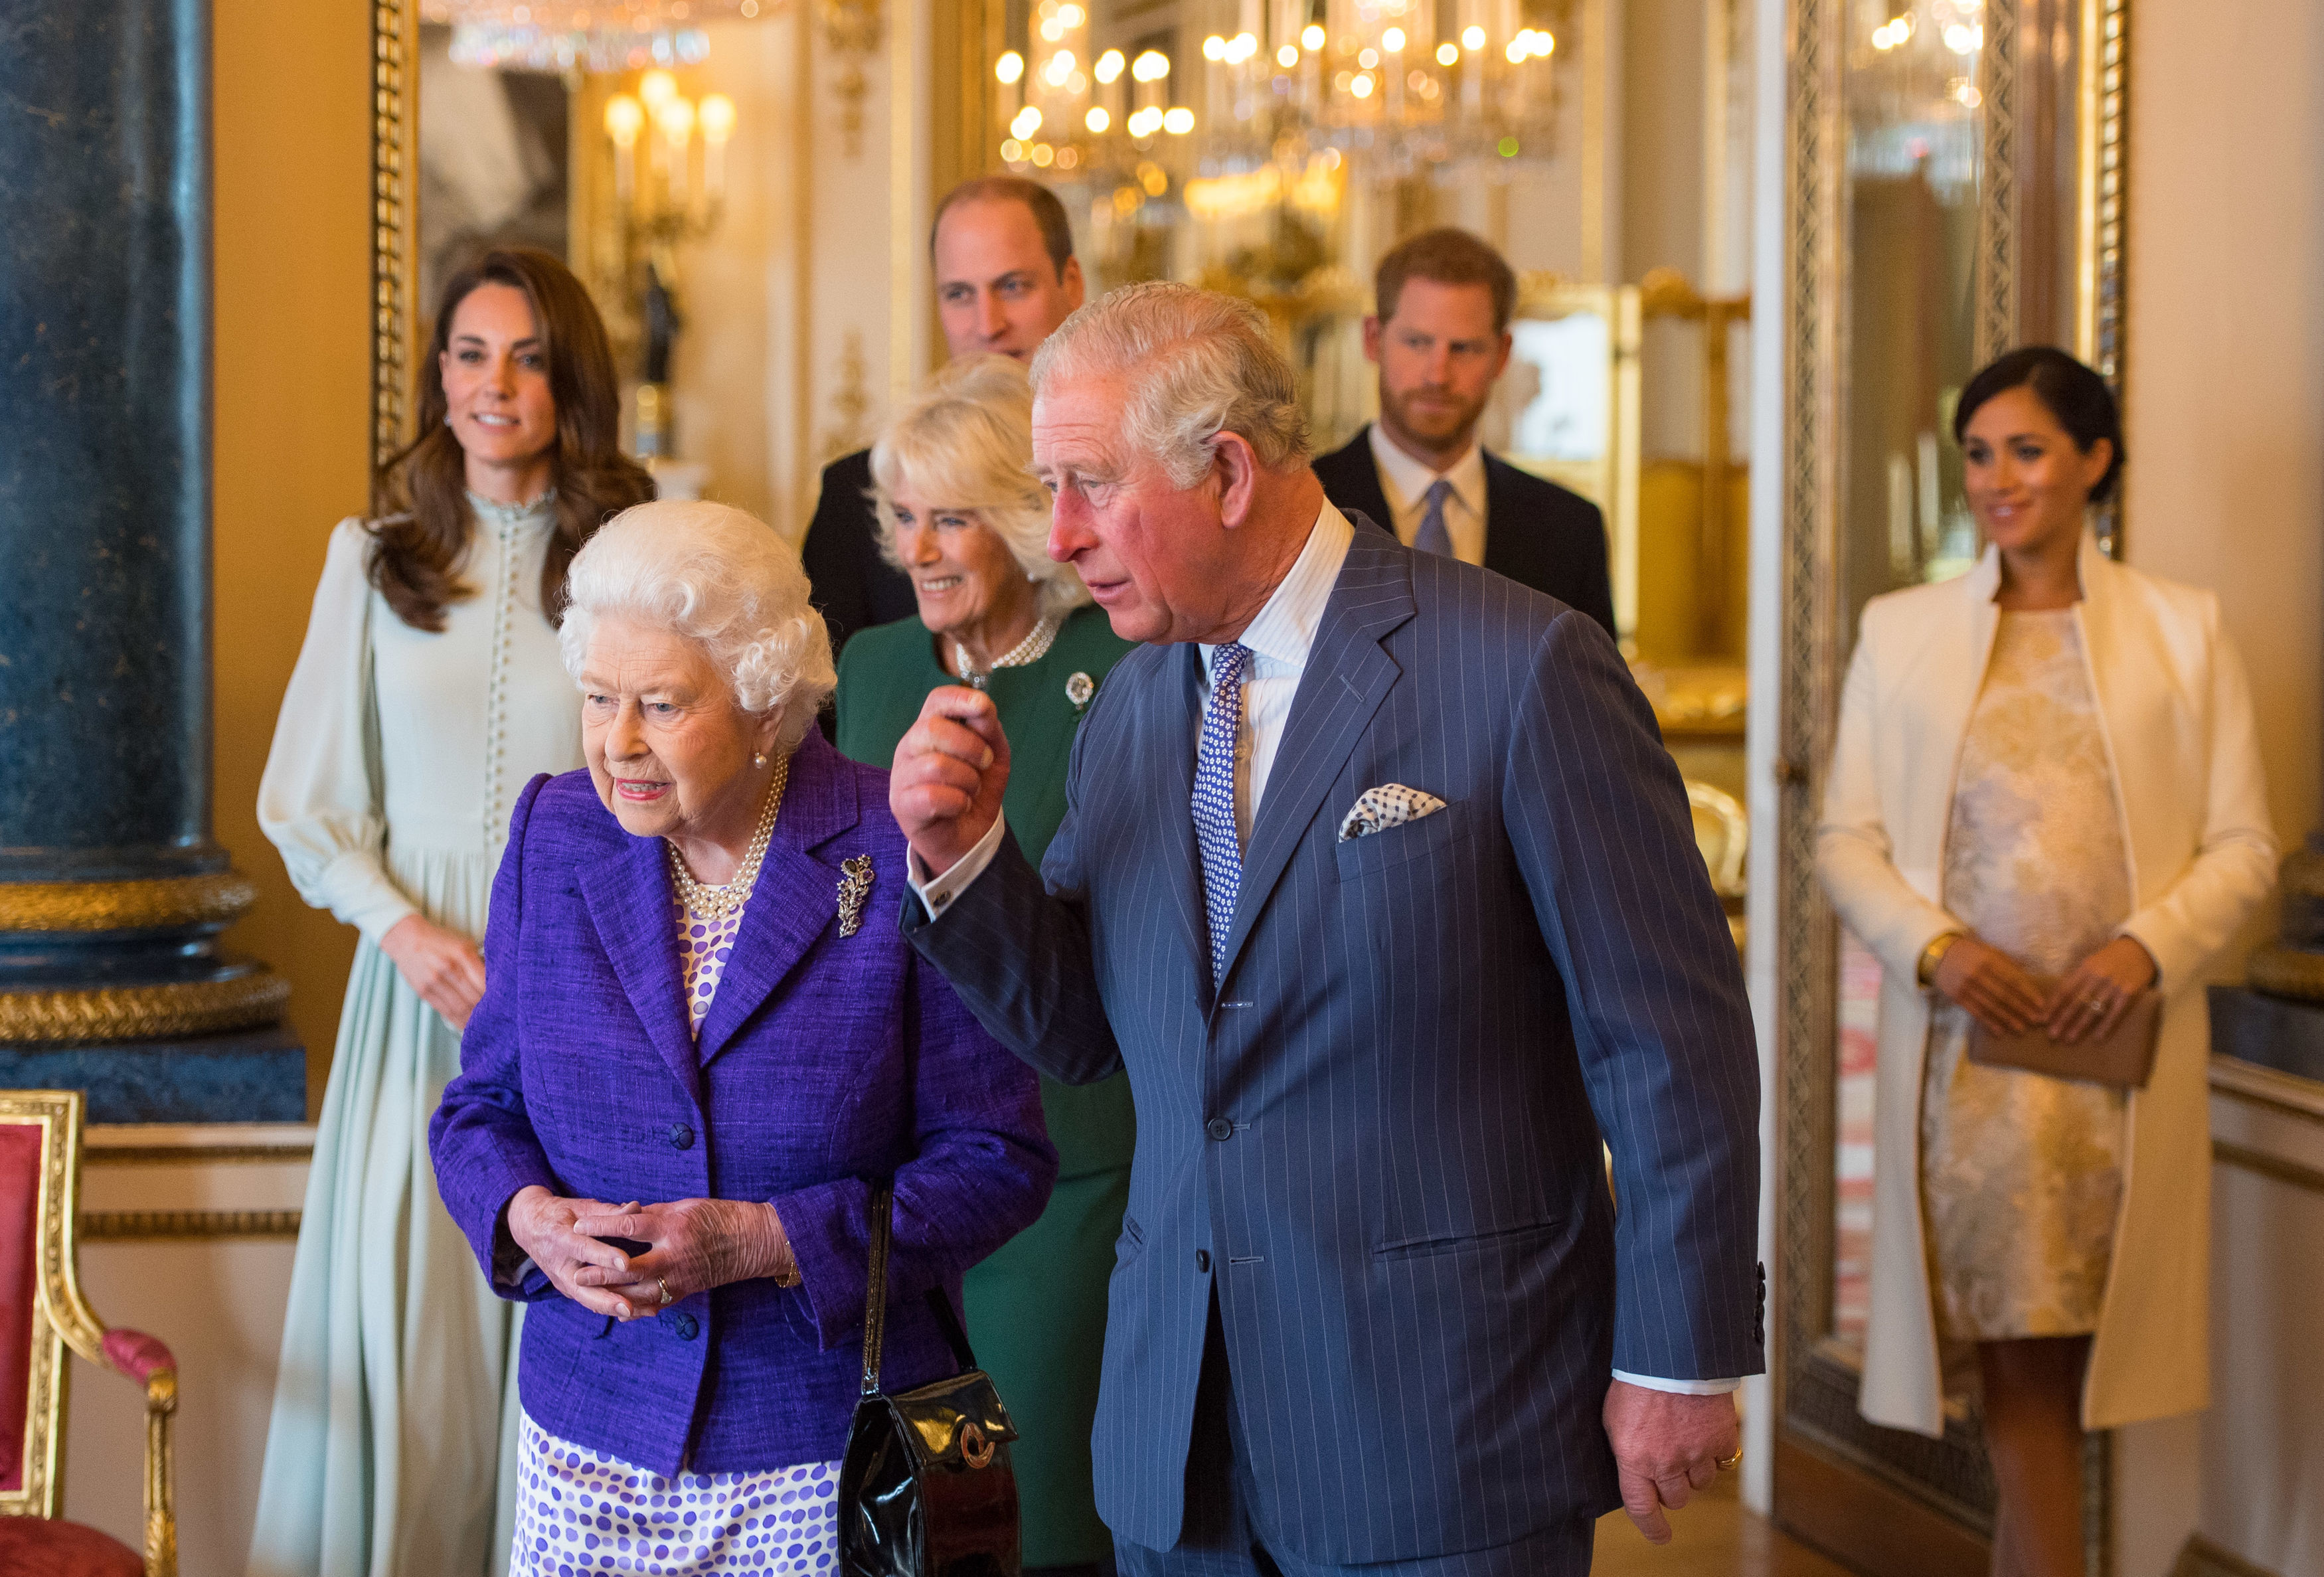 File photo dated 05/03/19 of the Duke and Duchess of Sussex joining Queen Elizabeth II and the Prince of Wales, followed by the Duke and Duchess of Cambridge and the Duchess of Cornwall, at a reception at Buckingham Palace in London to mark the fiftieth anniversary of the investiture of the Prince of Wales, as the PA news agency looks back on the royal couple's year.